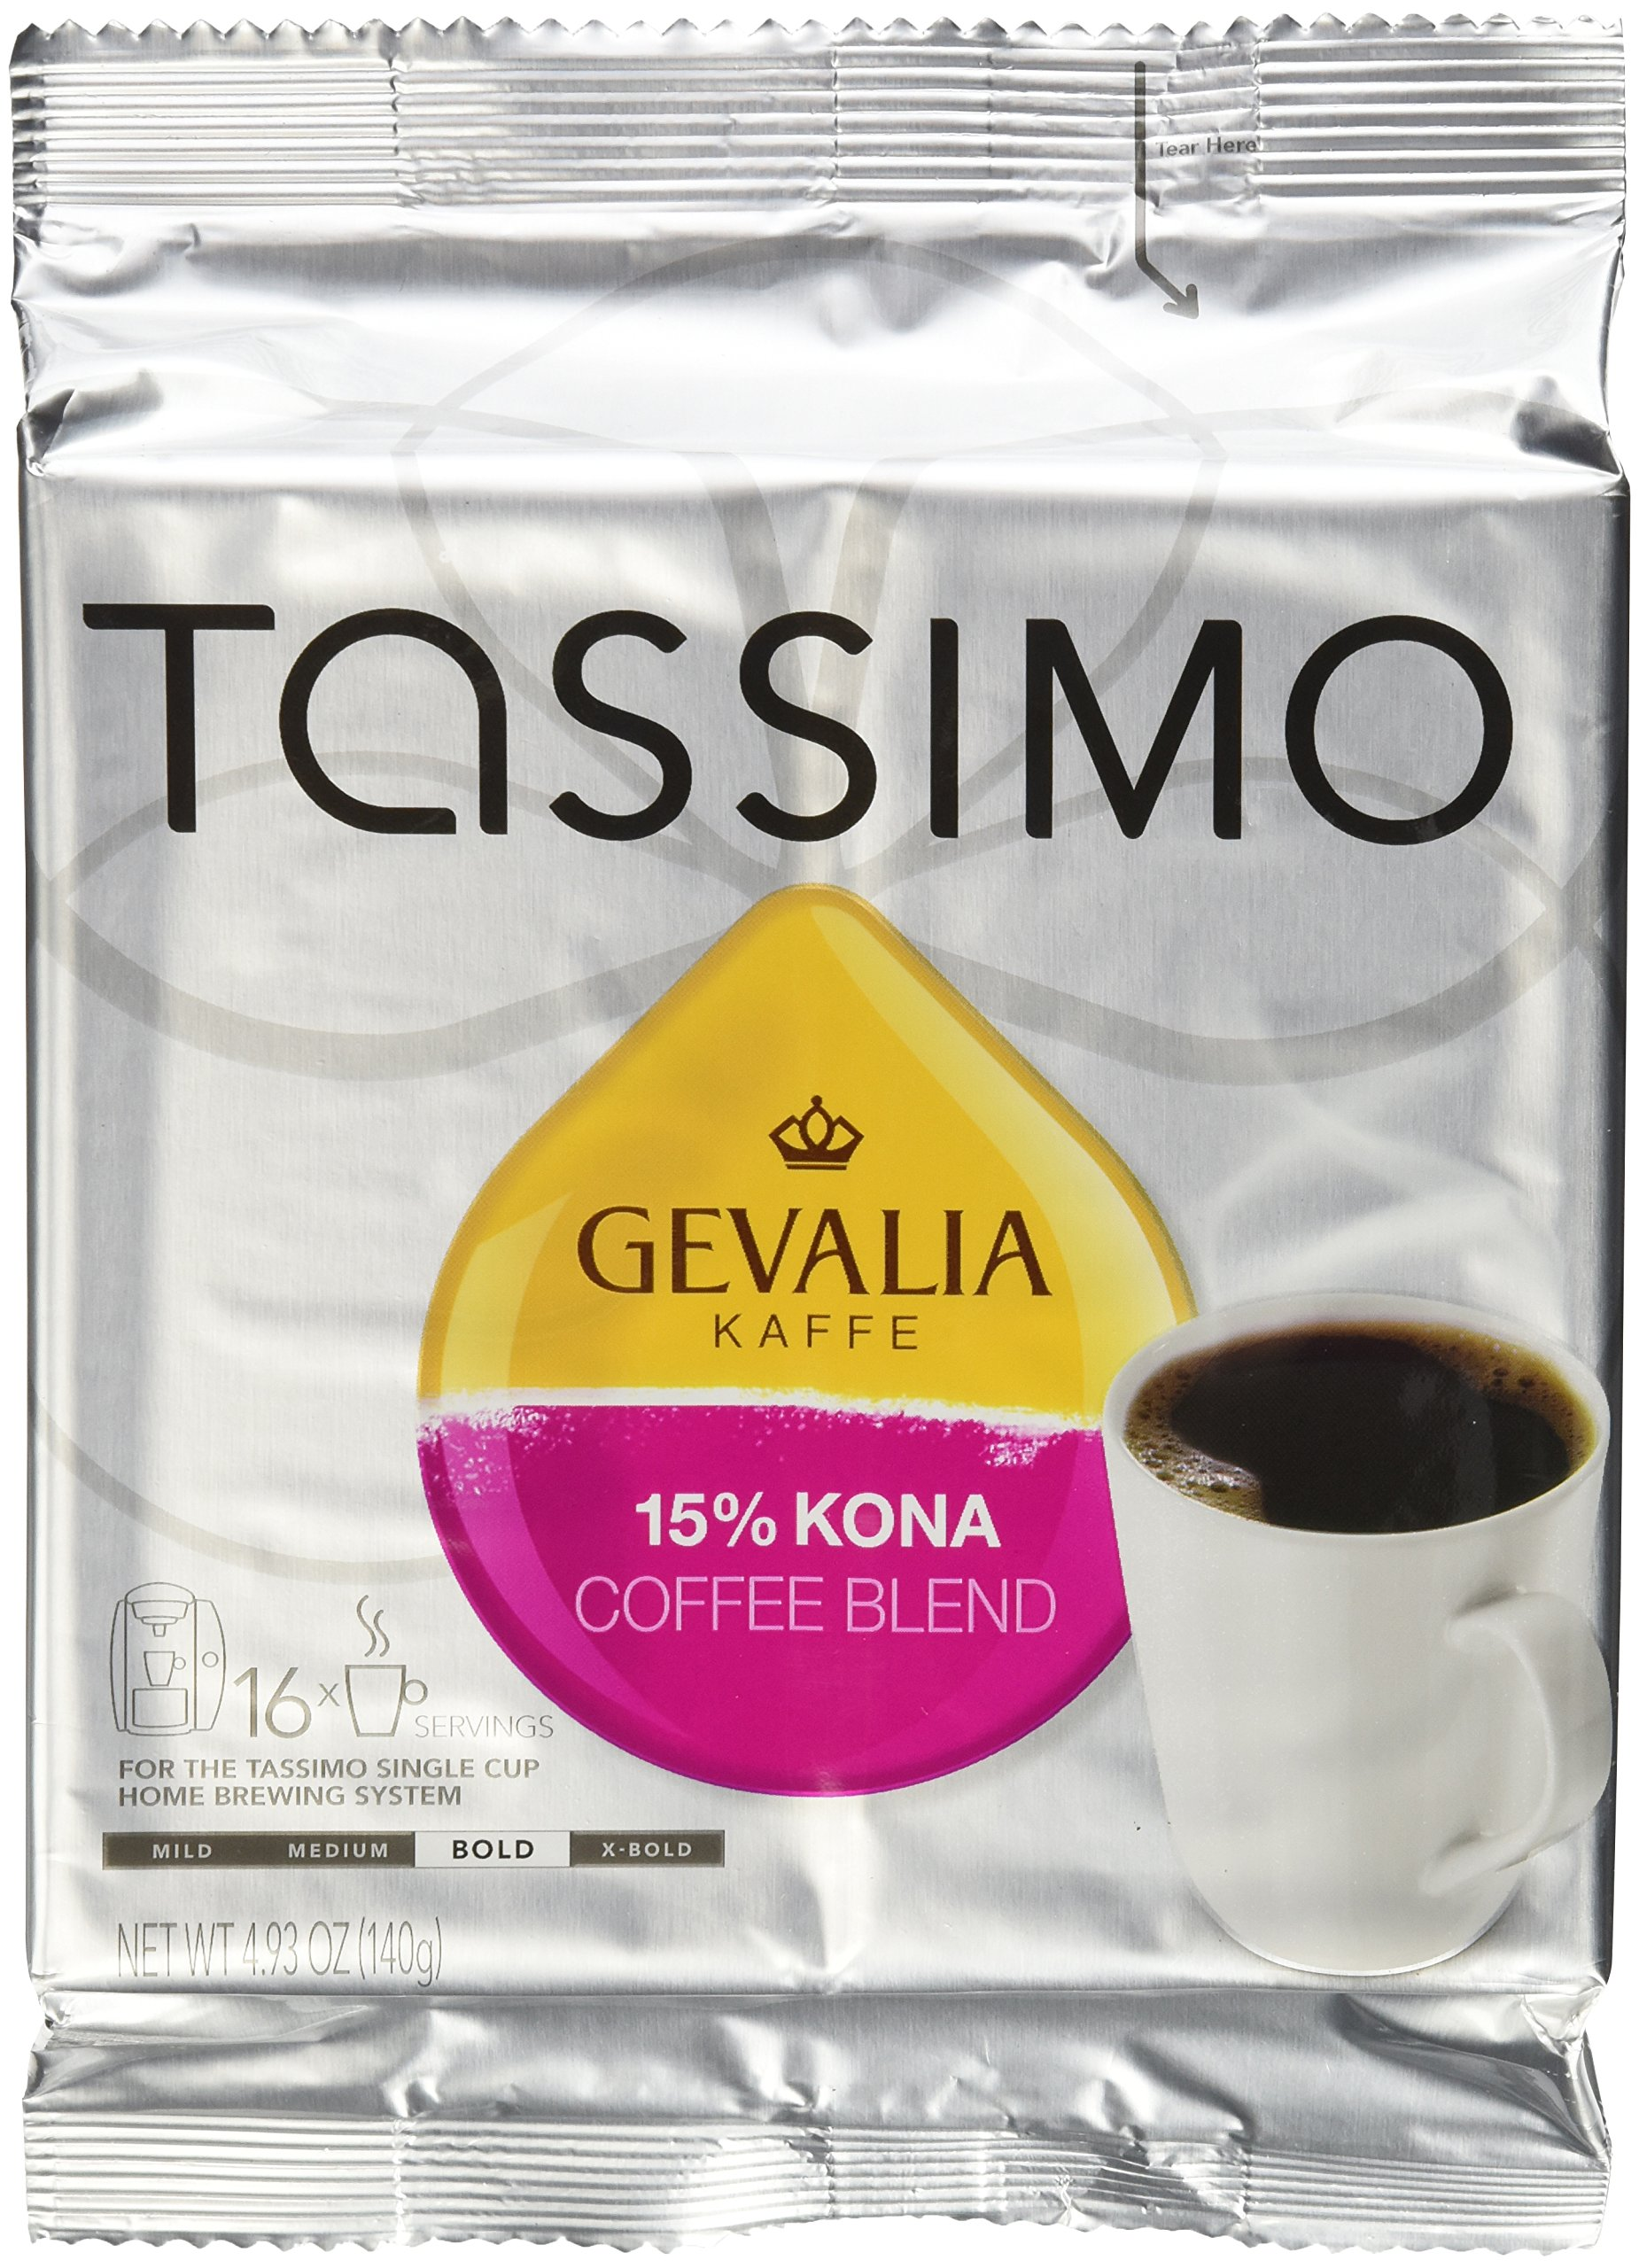 Gevalia Kaffe 15% Kona Blend Coffee, Pack of 3